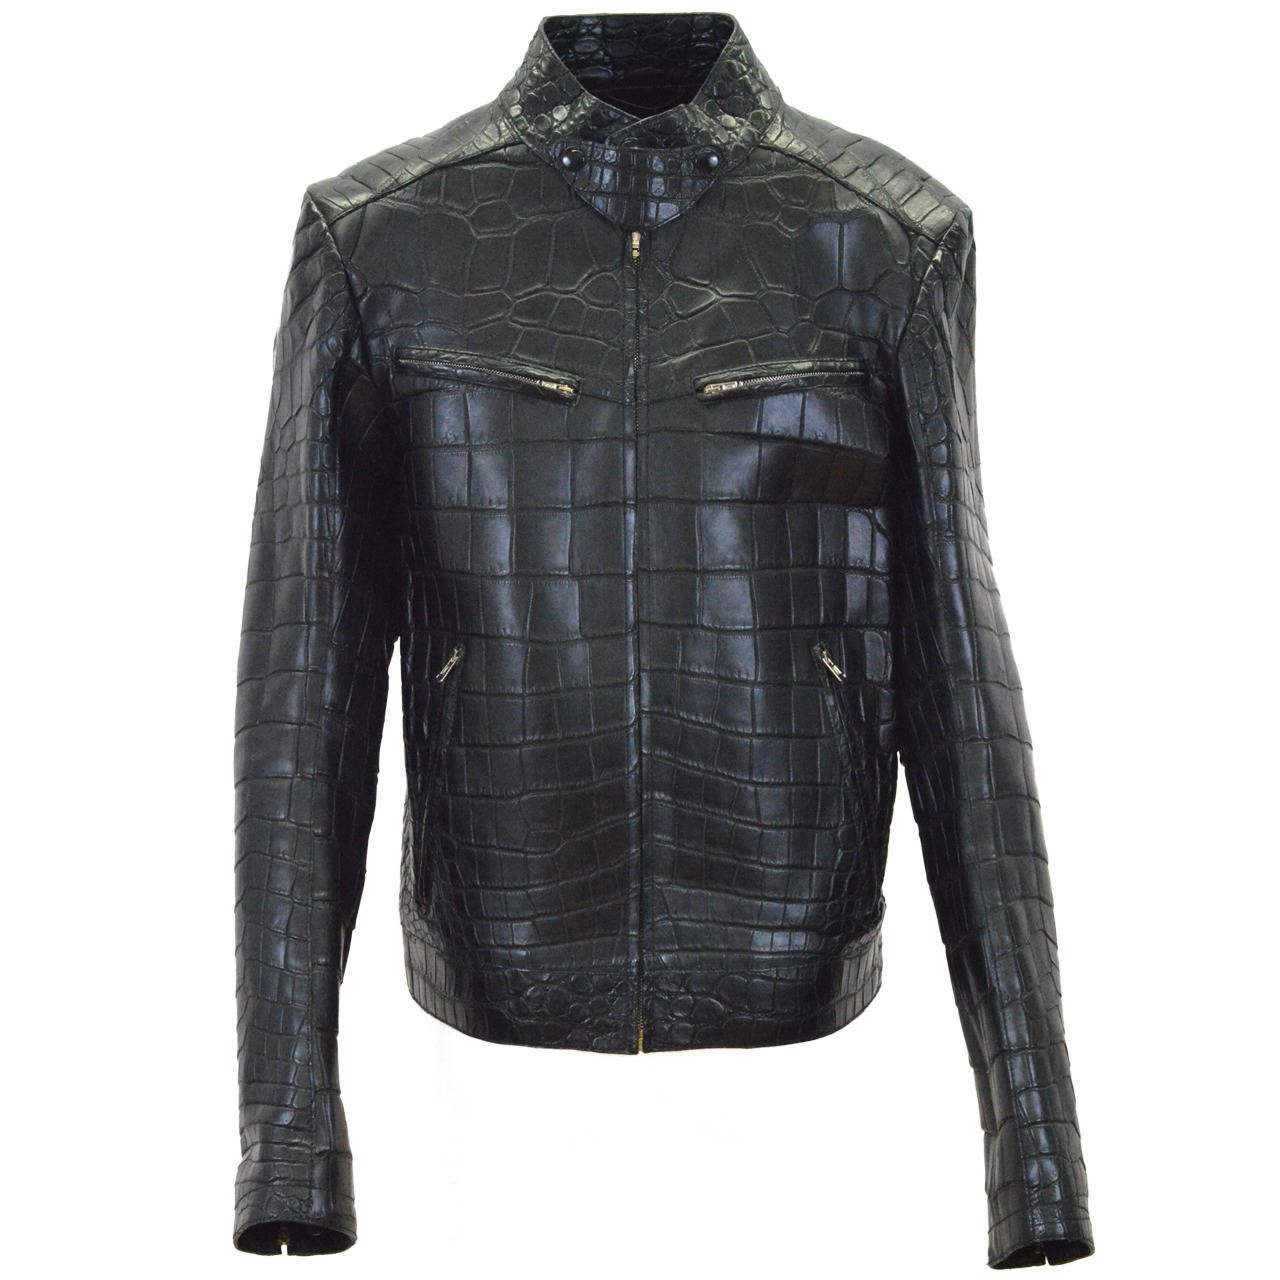 6c77960848f YVES SAINT LAURENT Jacket Black Crocodile Leather | human cladding ...